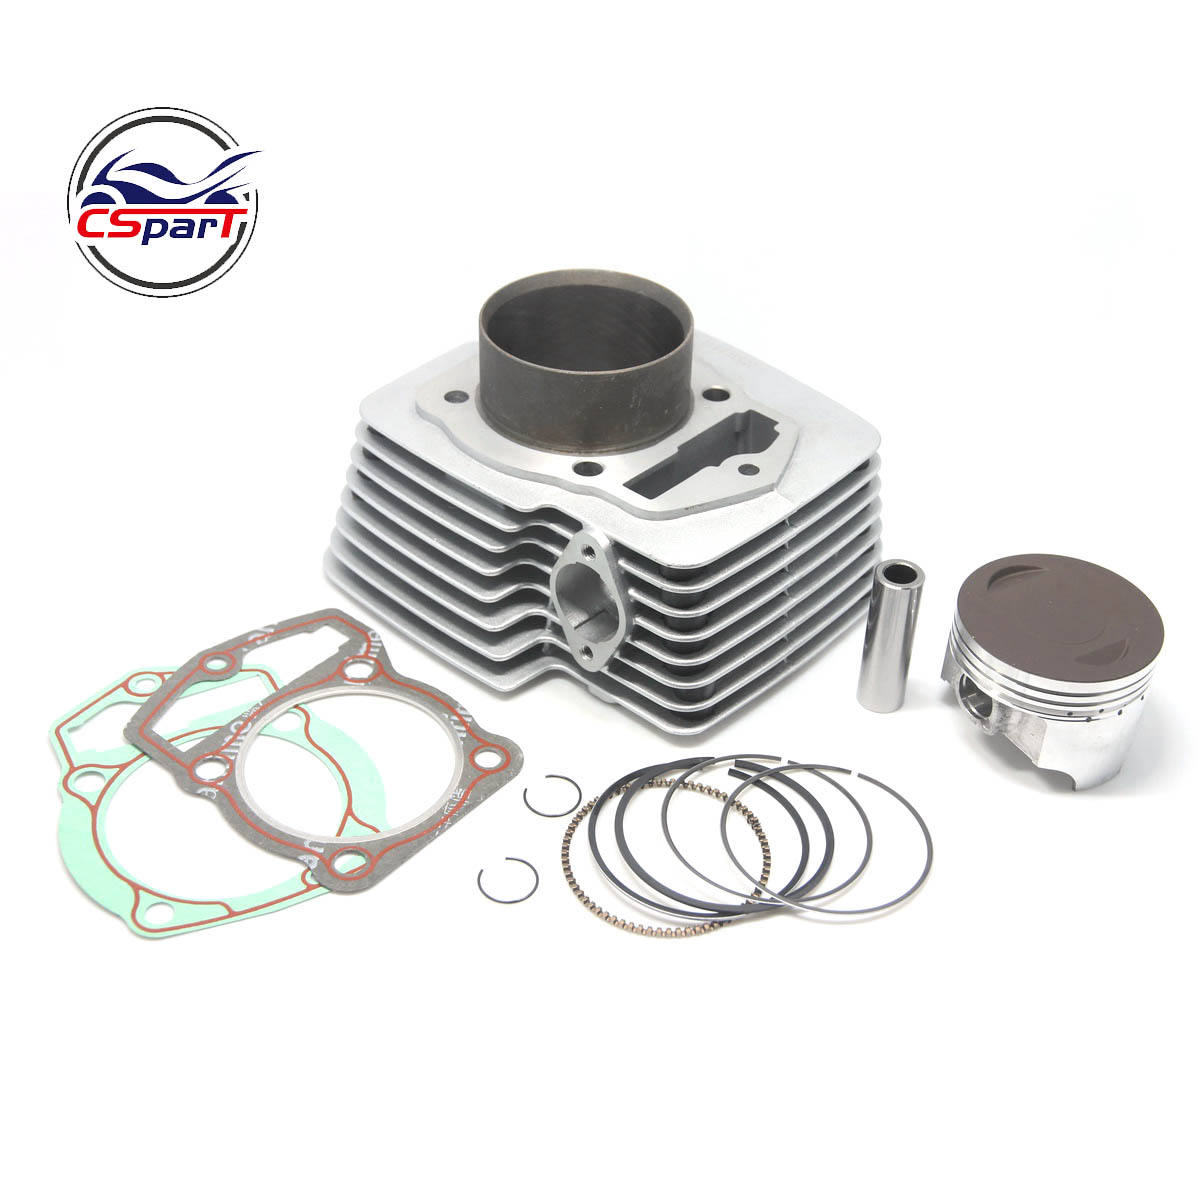 69MM Cylinder kit 17MM Pin for Loncin ZongShen CB250 250CC 169FMM Engine Shineray Kaya Xmotos Apollo Tmax Pit Dirt Bike Parts